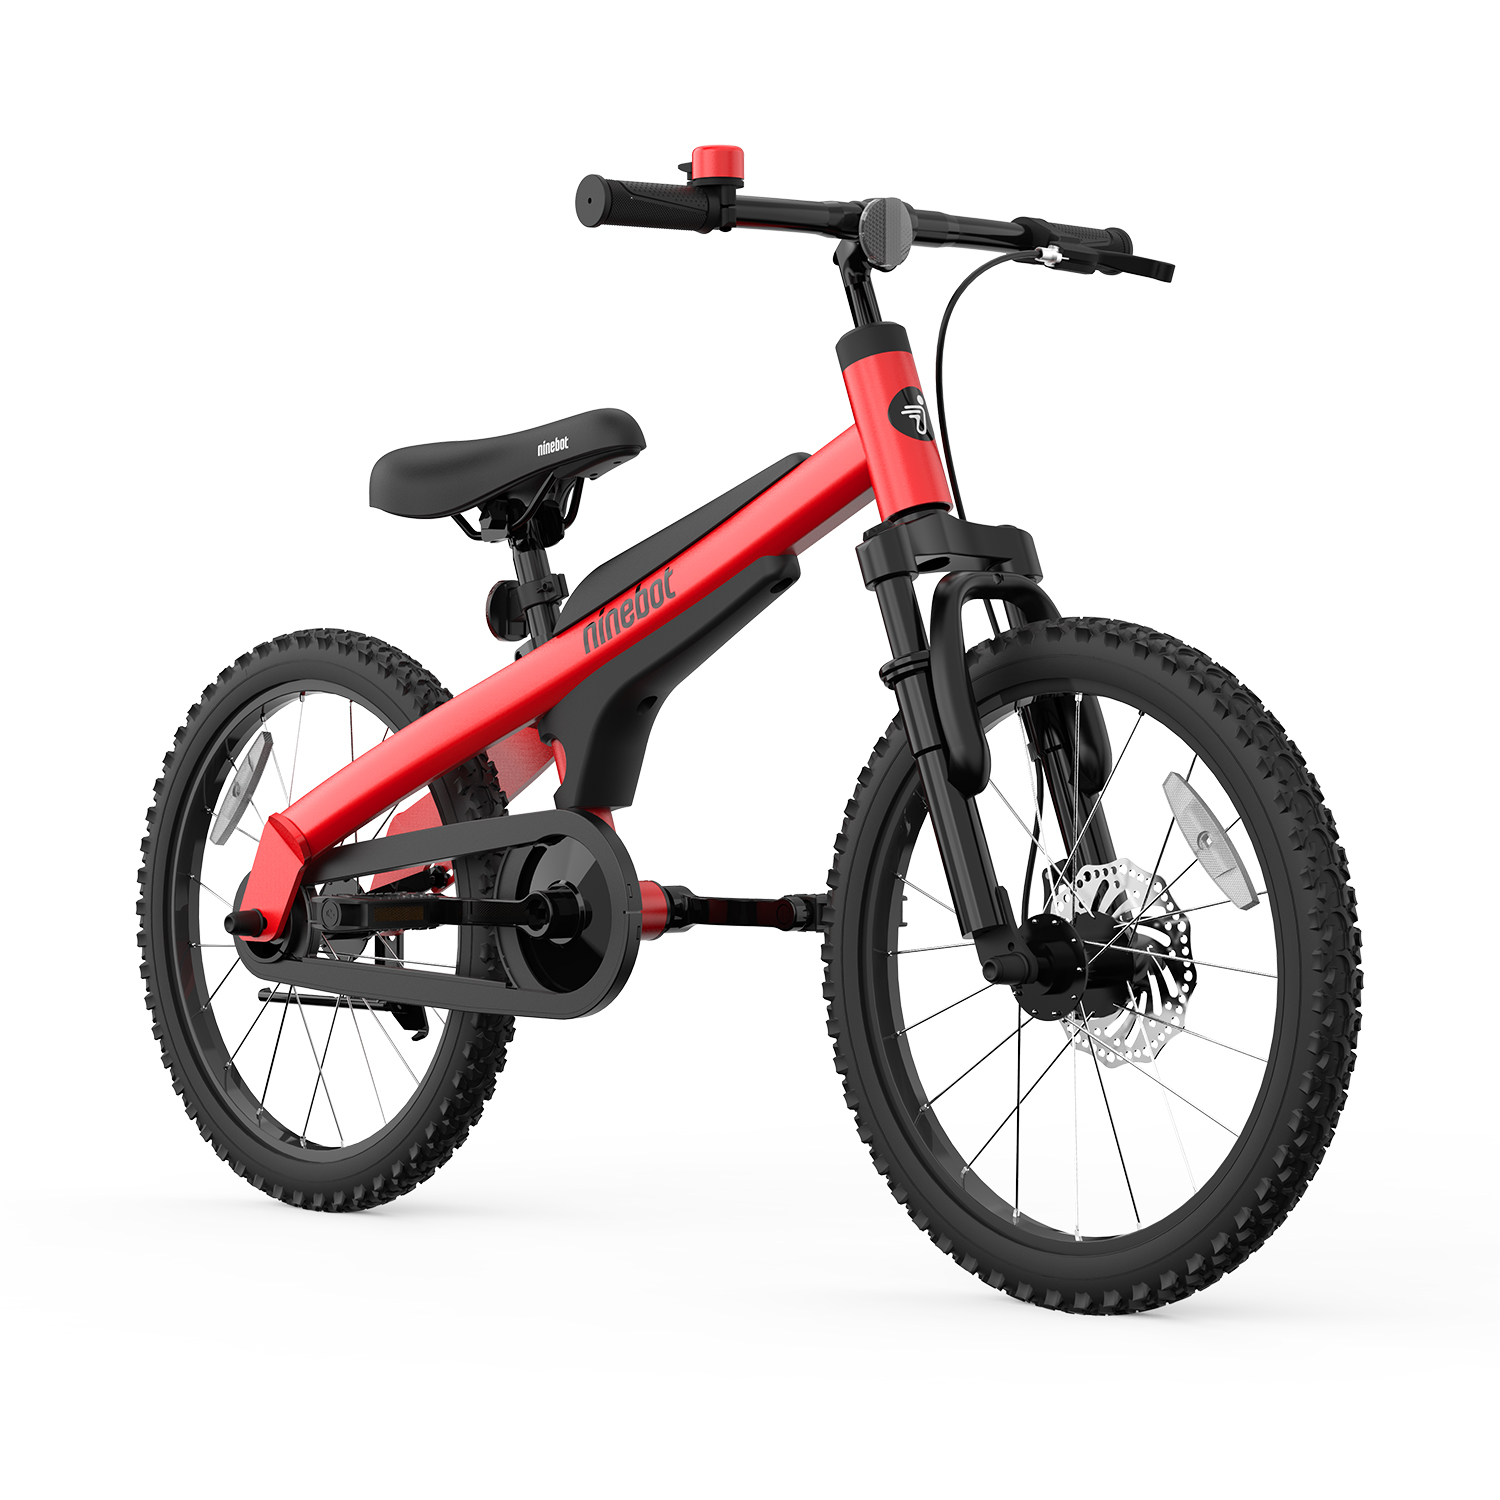 [US Direct] Original NINEBOT Kids Bike by Segway 18 Inch with Kickstand, Premium Grade, Recommended Height 3'9'' - 4'9'' (Blue) Red